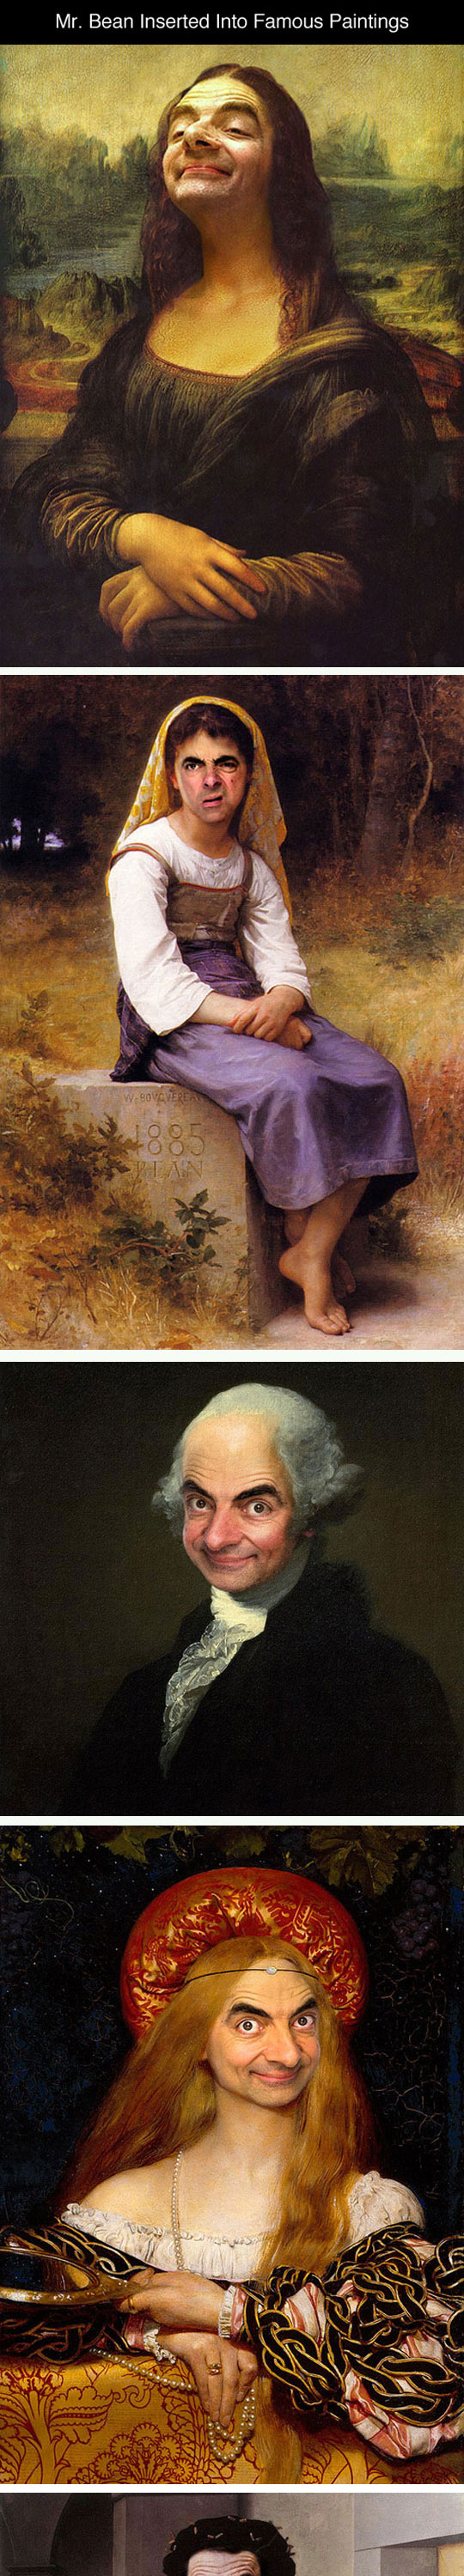 funny-Mr-Bean-classic-paintings-style